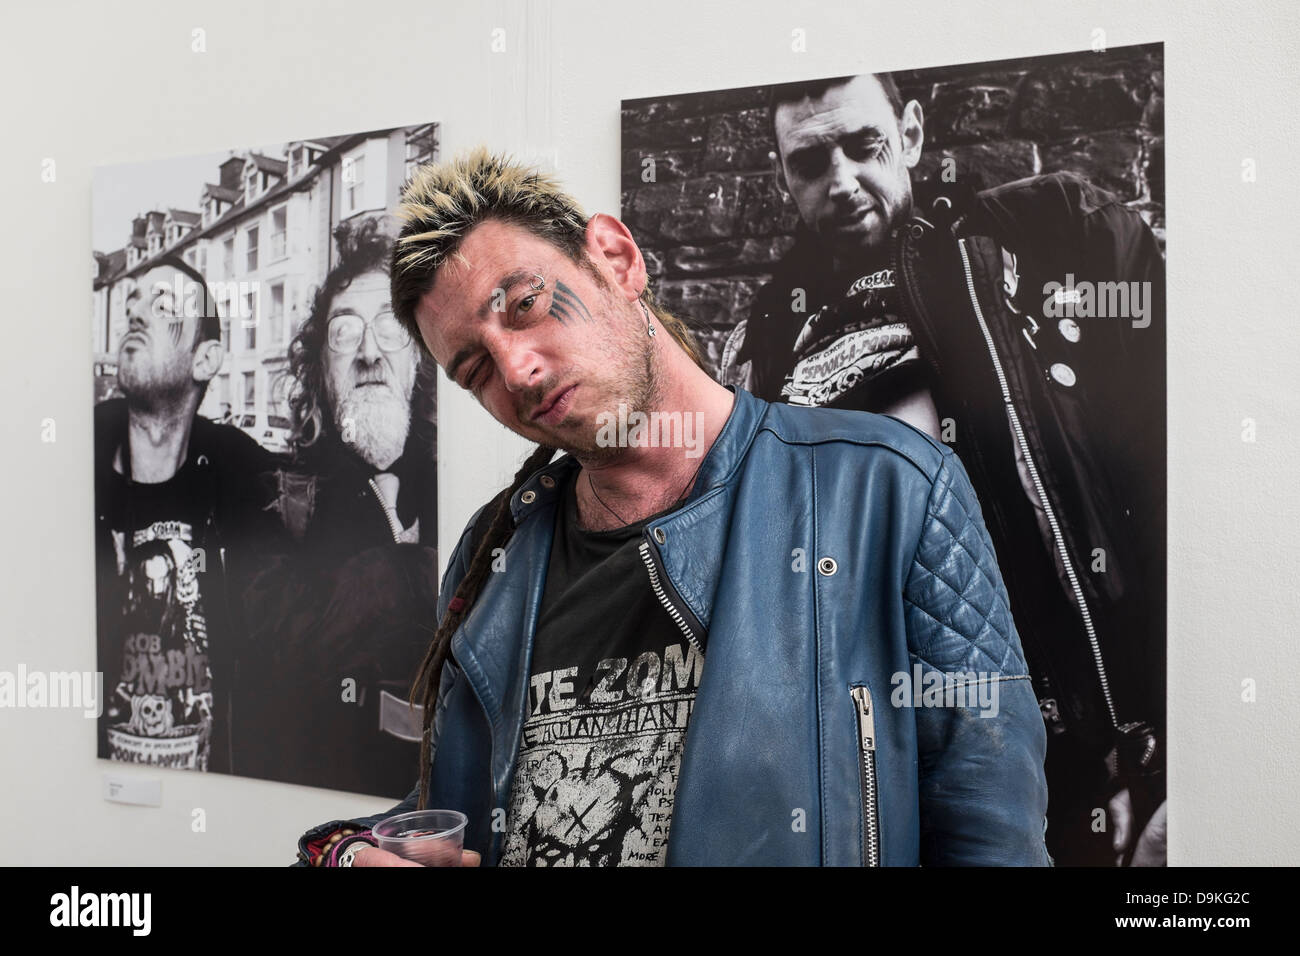 A punk style man standing in from of photos of himself at Final degree exhibition at Aberystwyth University School - Stock Image